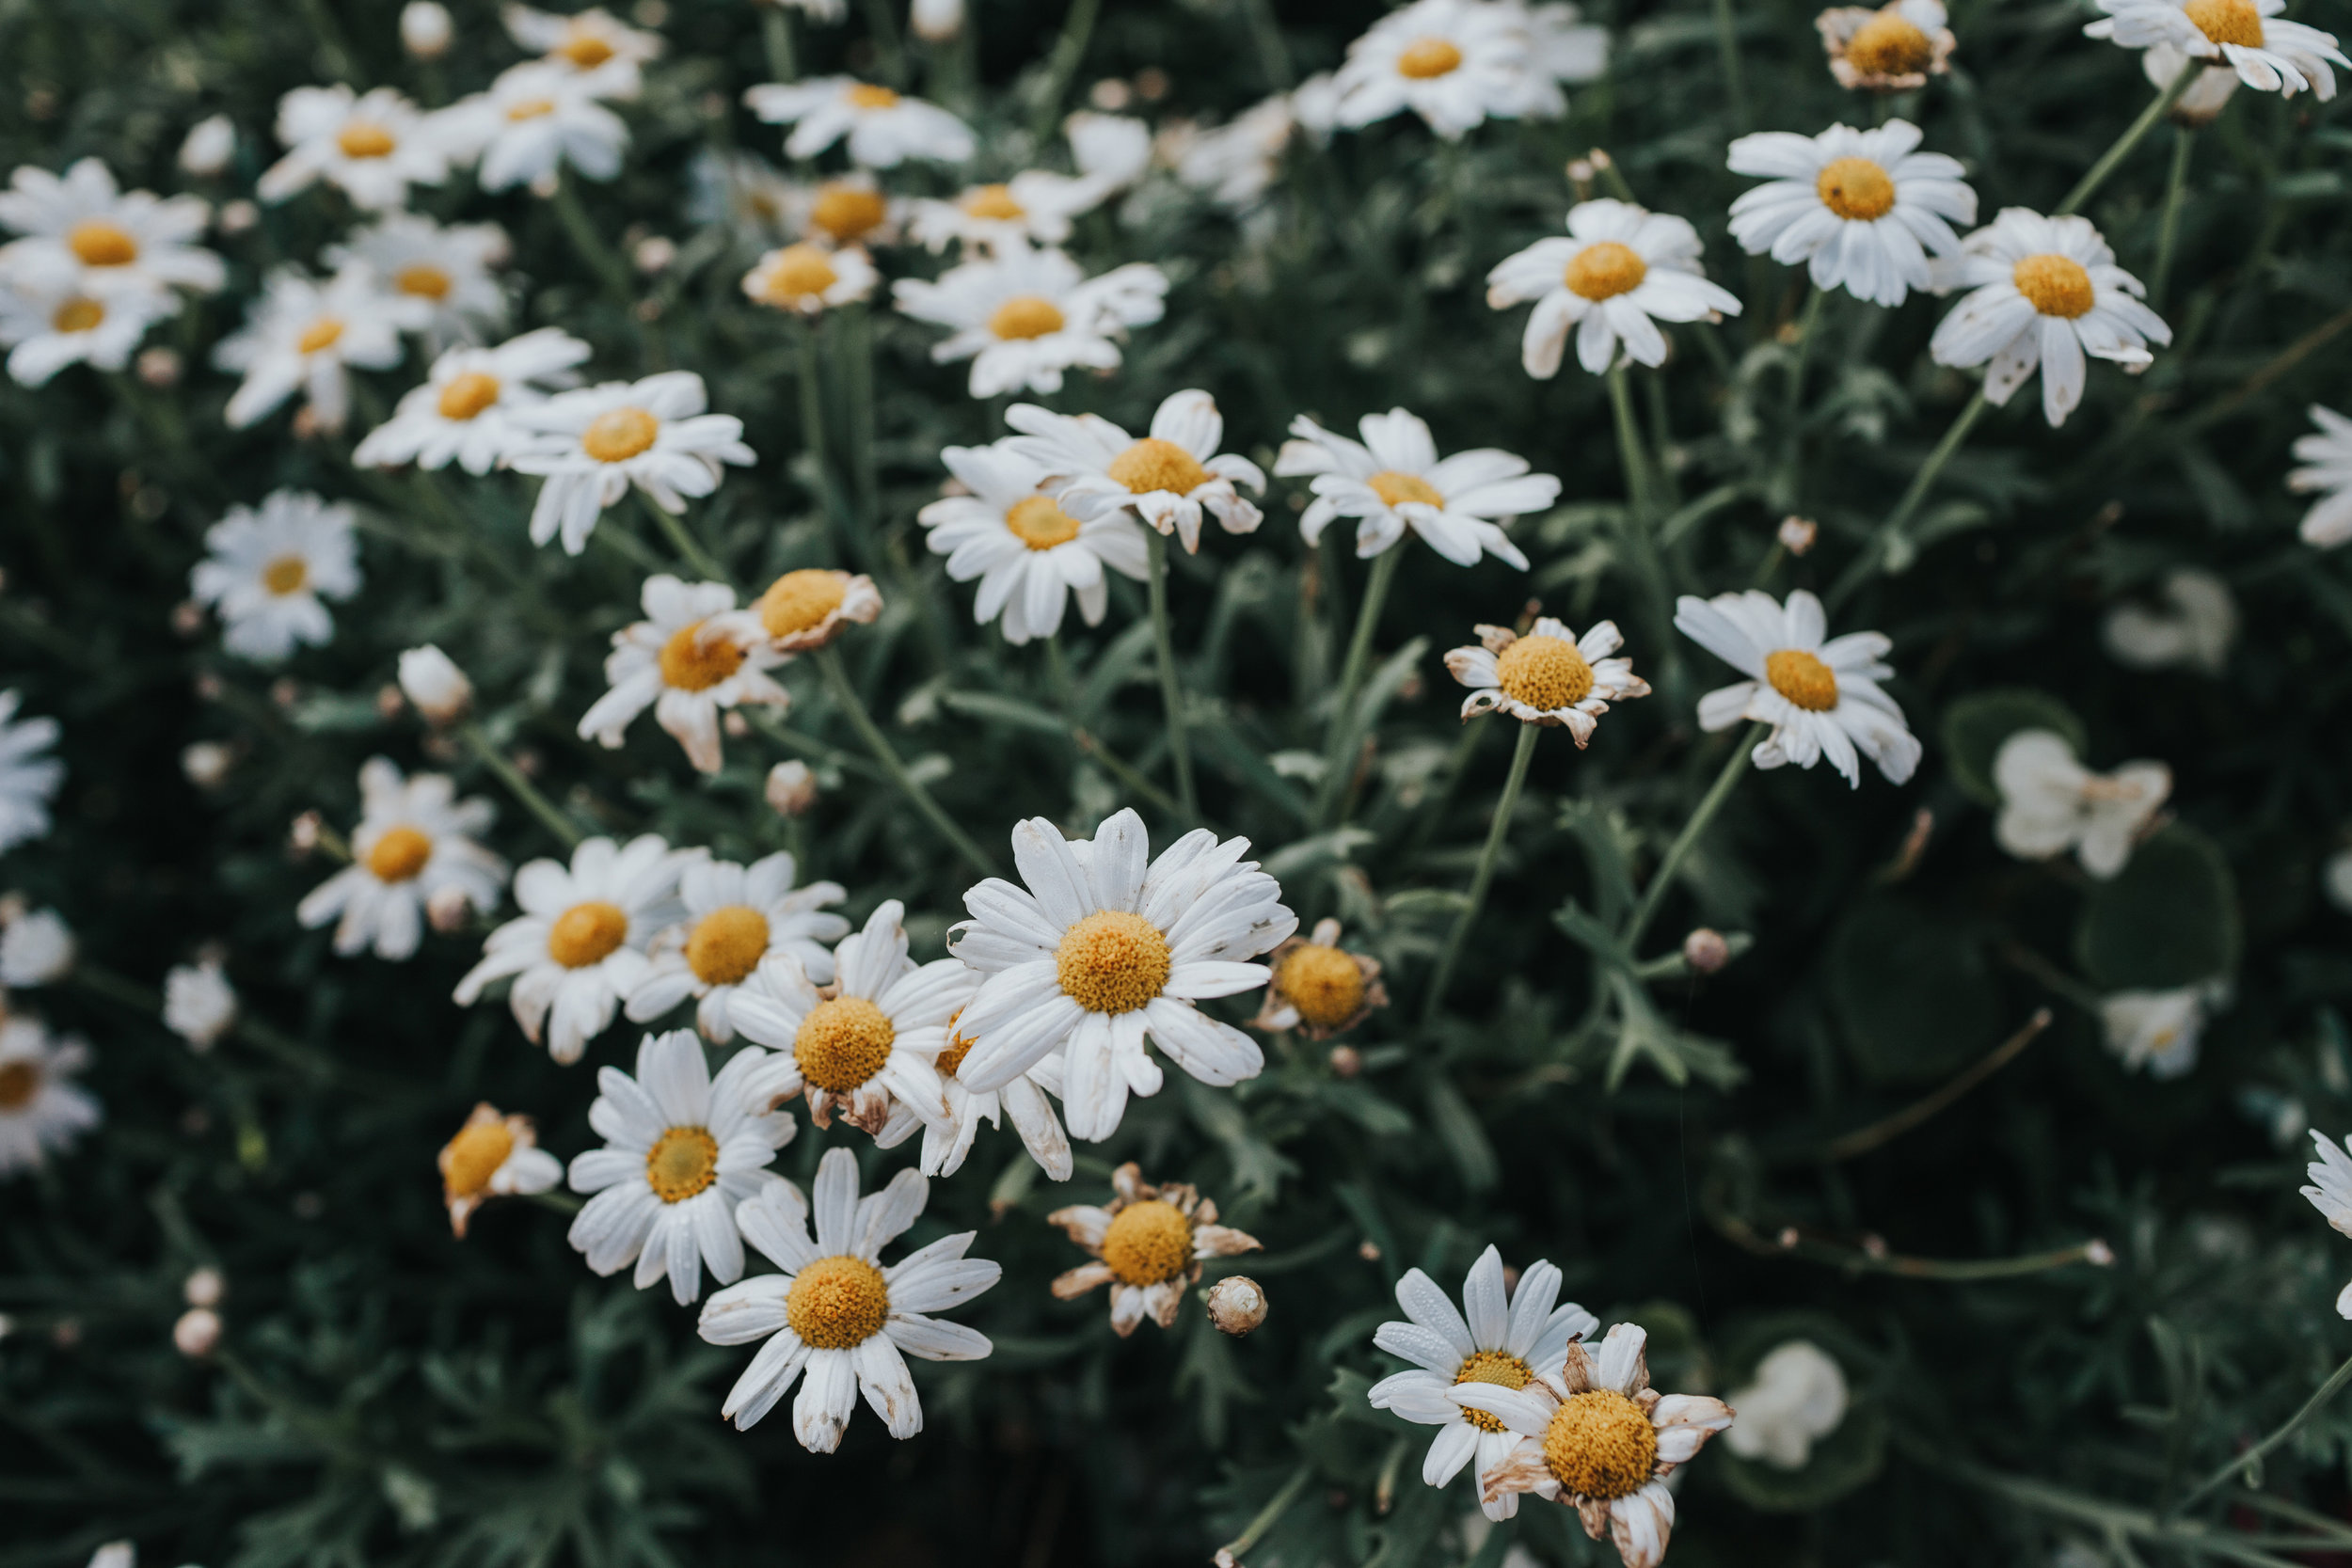 Daisies growing outside.